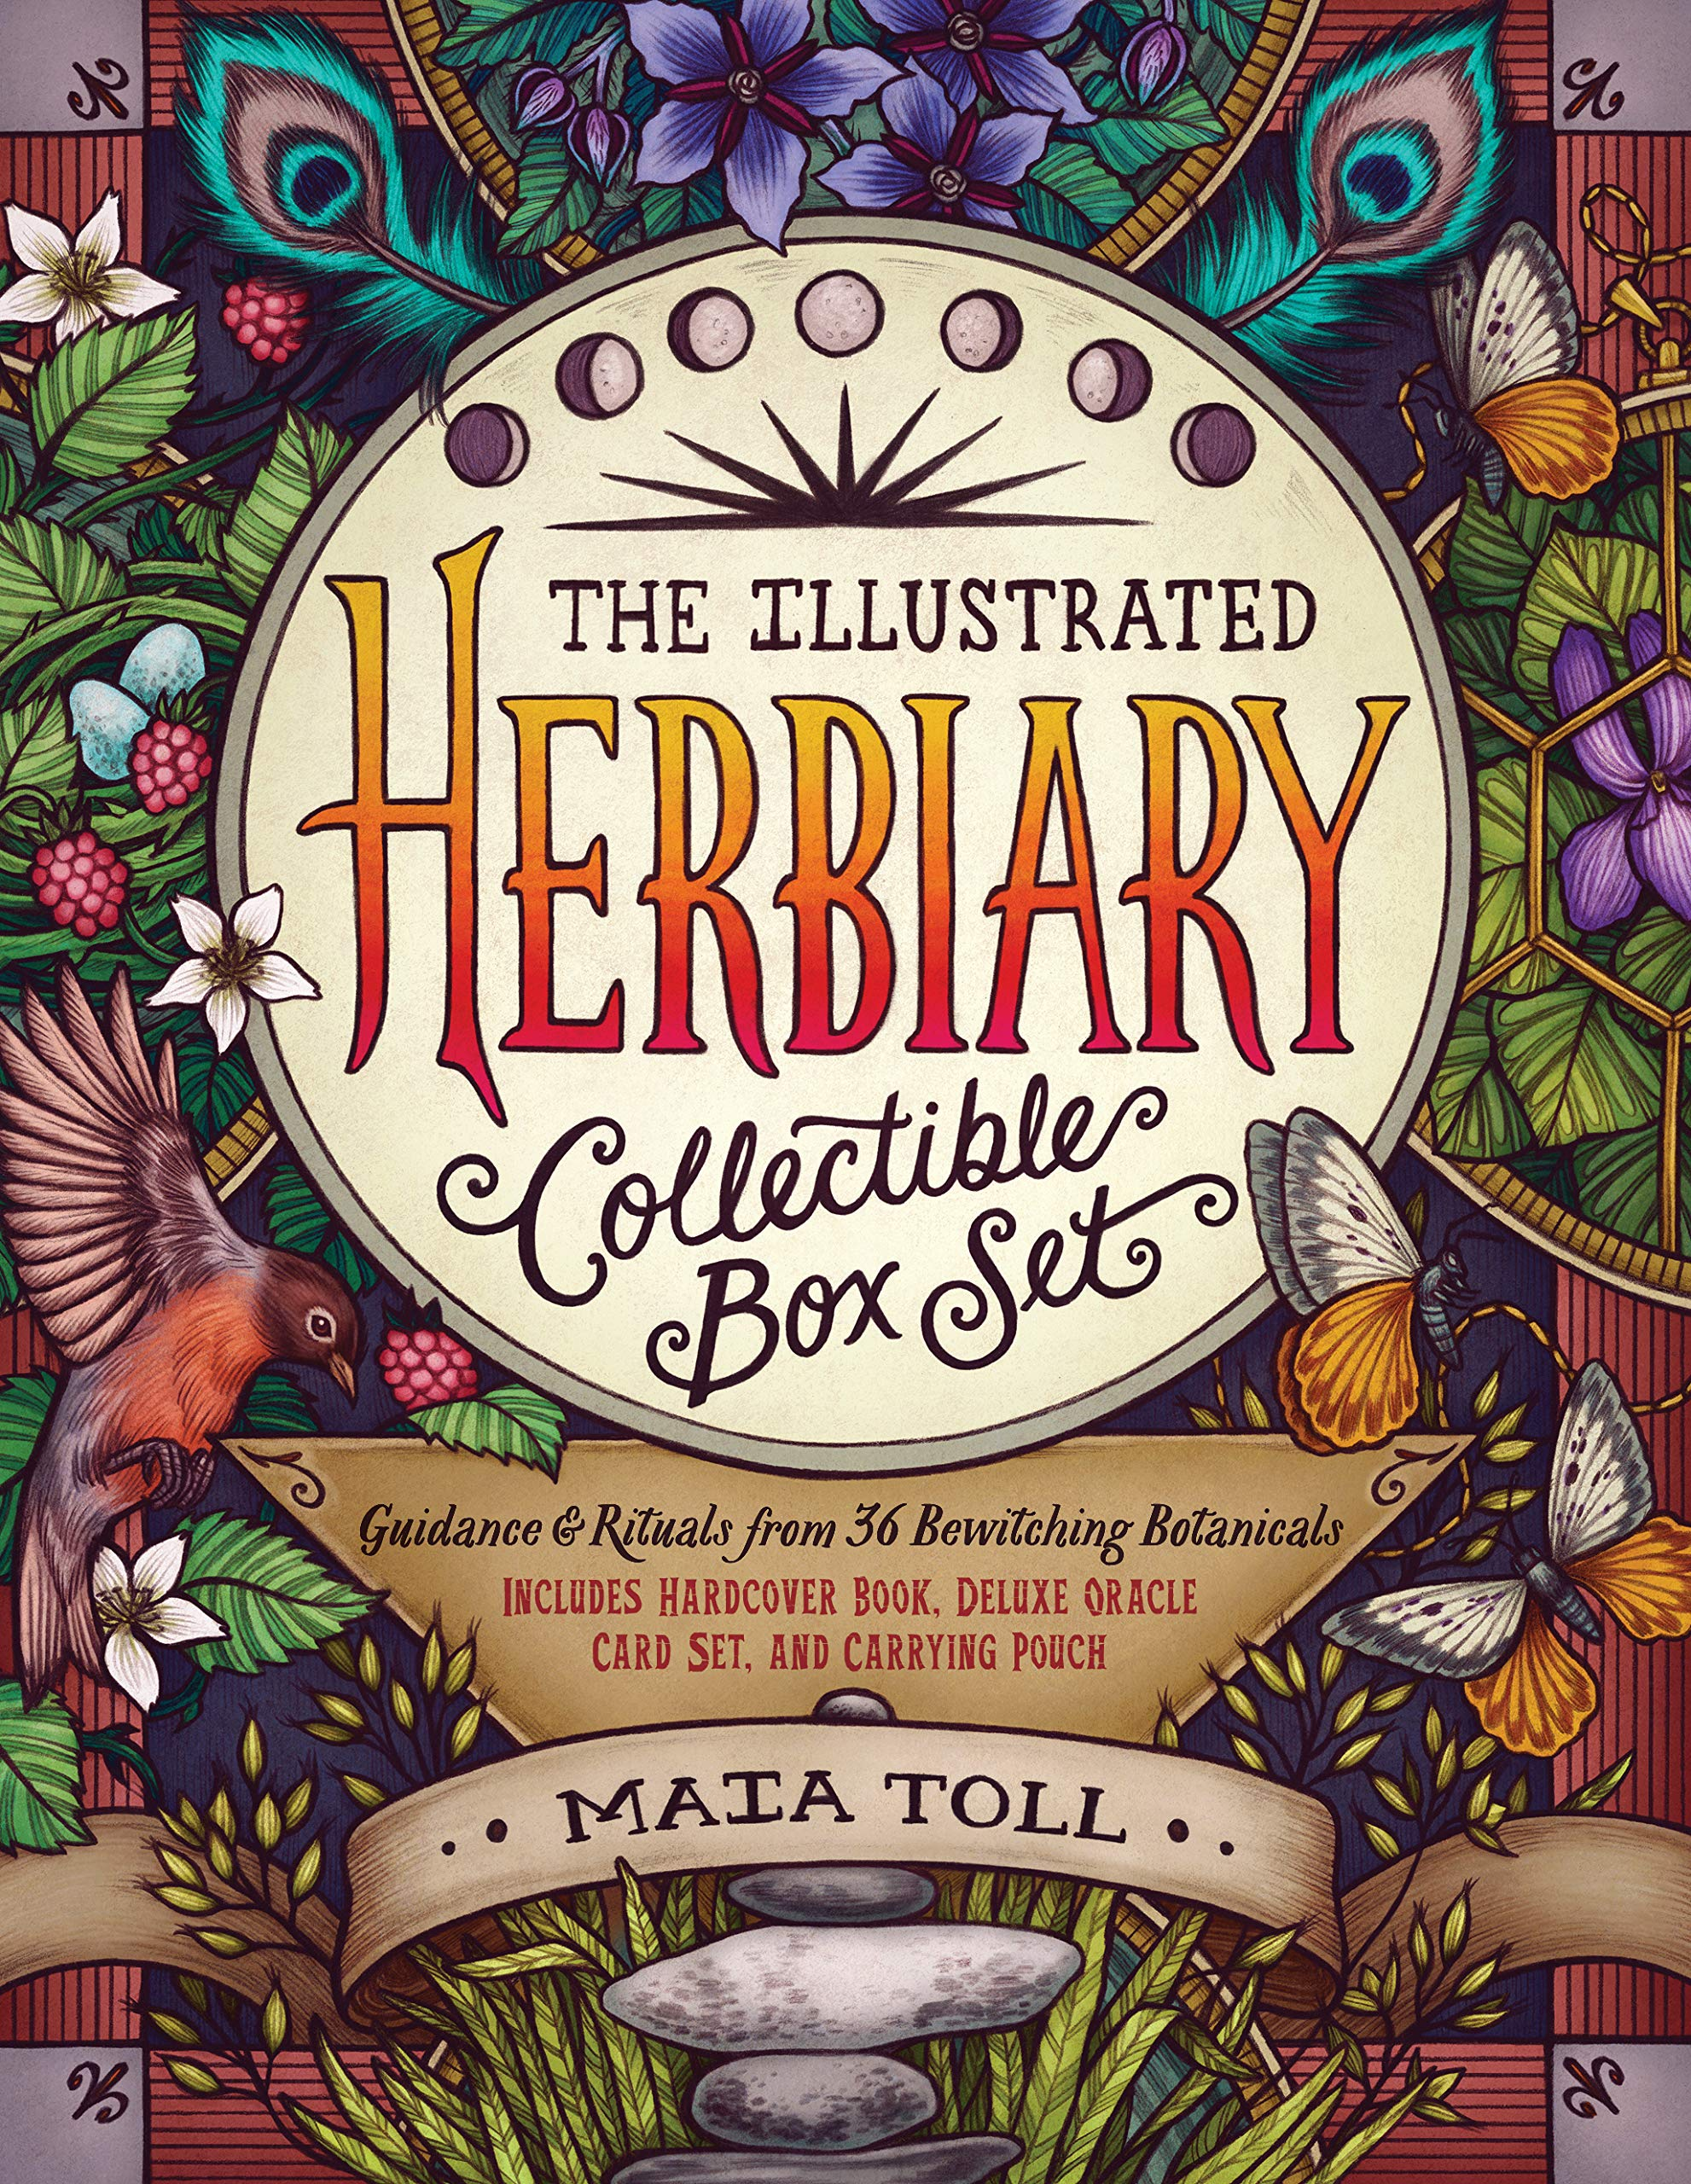 The Illustrated Herbiary Collectible Box Set: Guidance and Rituals from 36 Bewitching Botanicals; Includes Hardcover Book, Deluxe Oracle Card Set, and Carrying Pouch by Storey Publishing, LLC